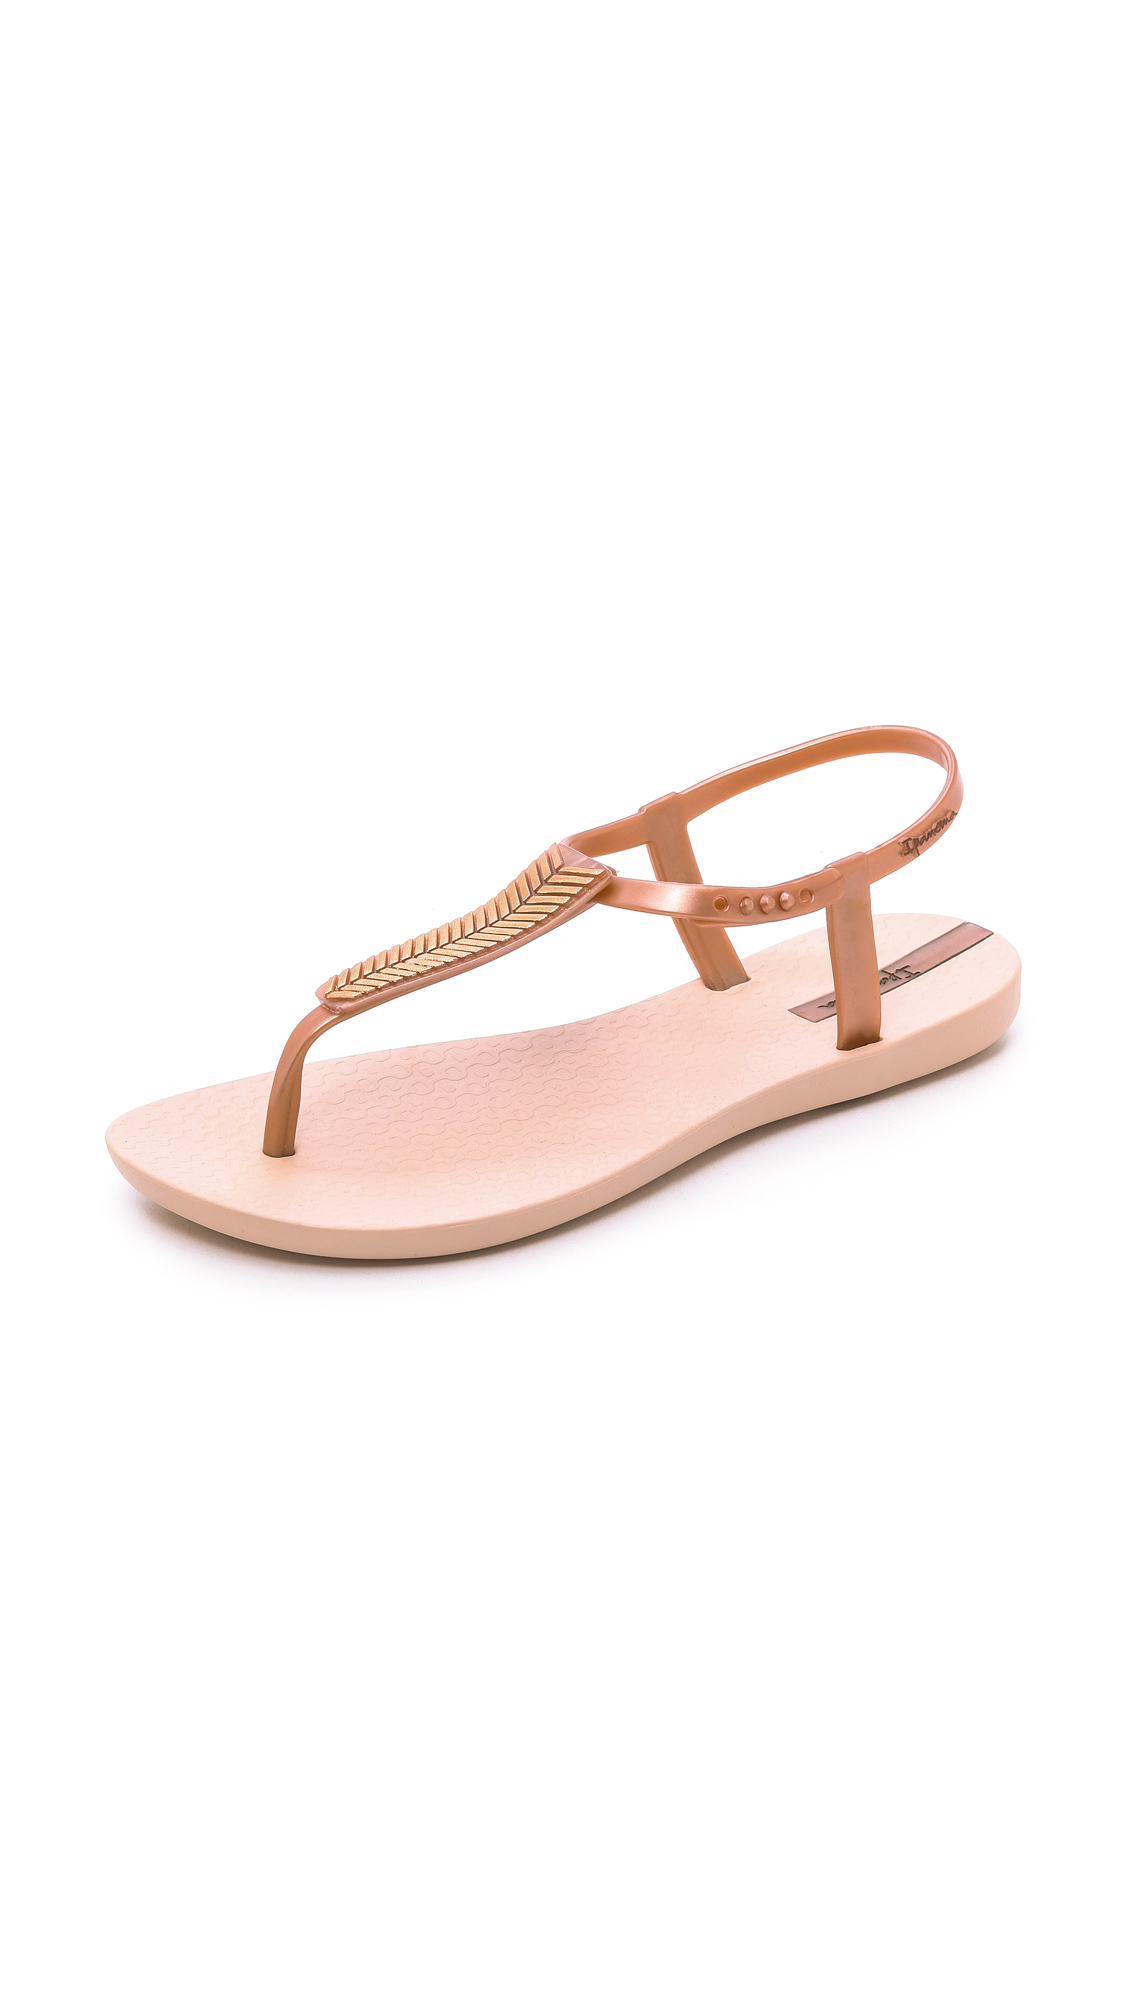 Lyst Ipanema Pink Gold Sandals Rose In Eva 08wvnmN